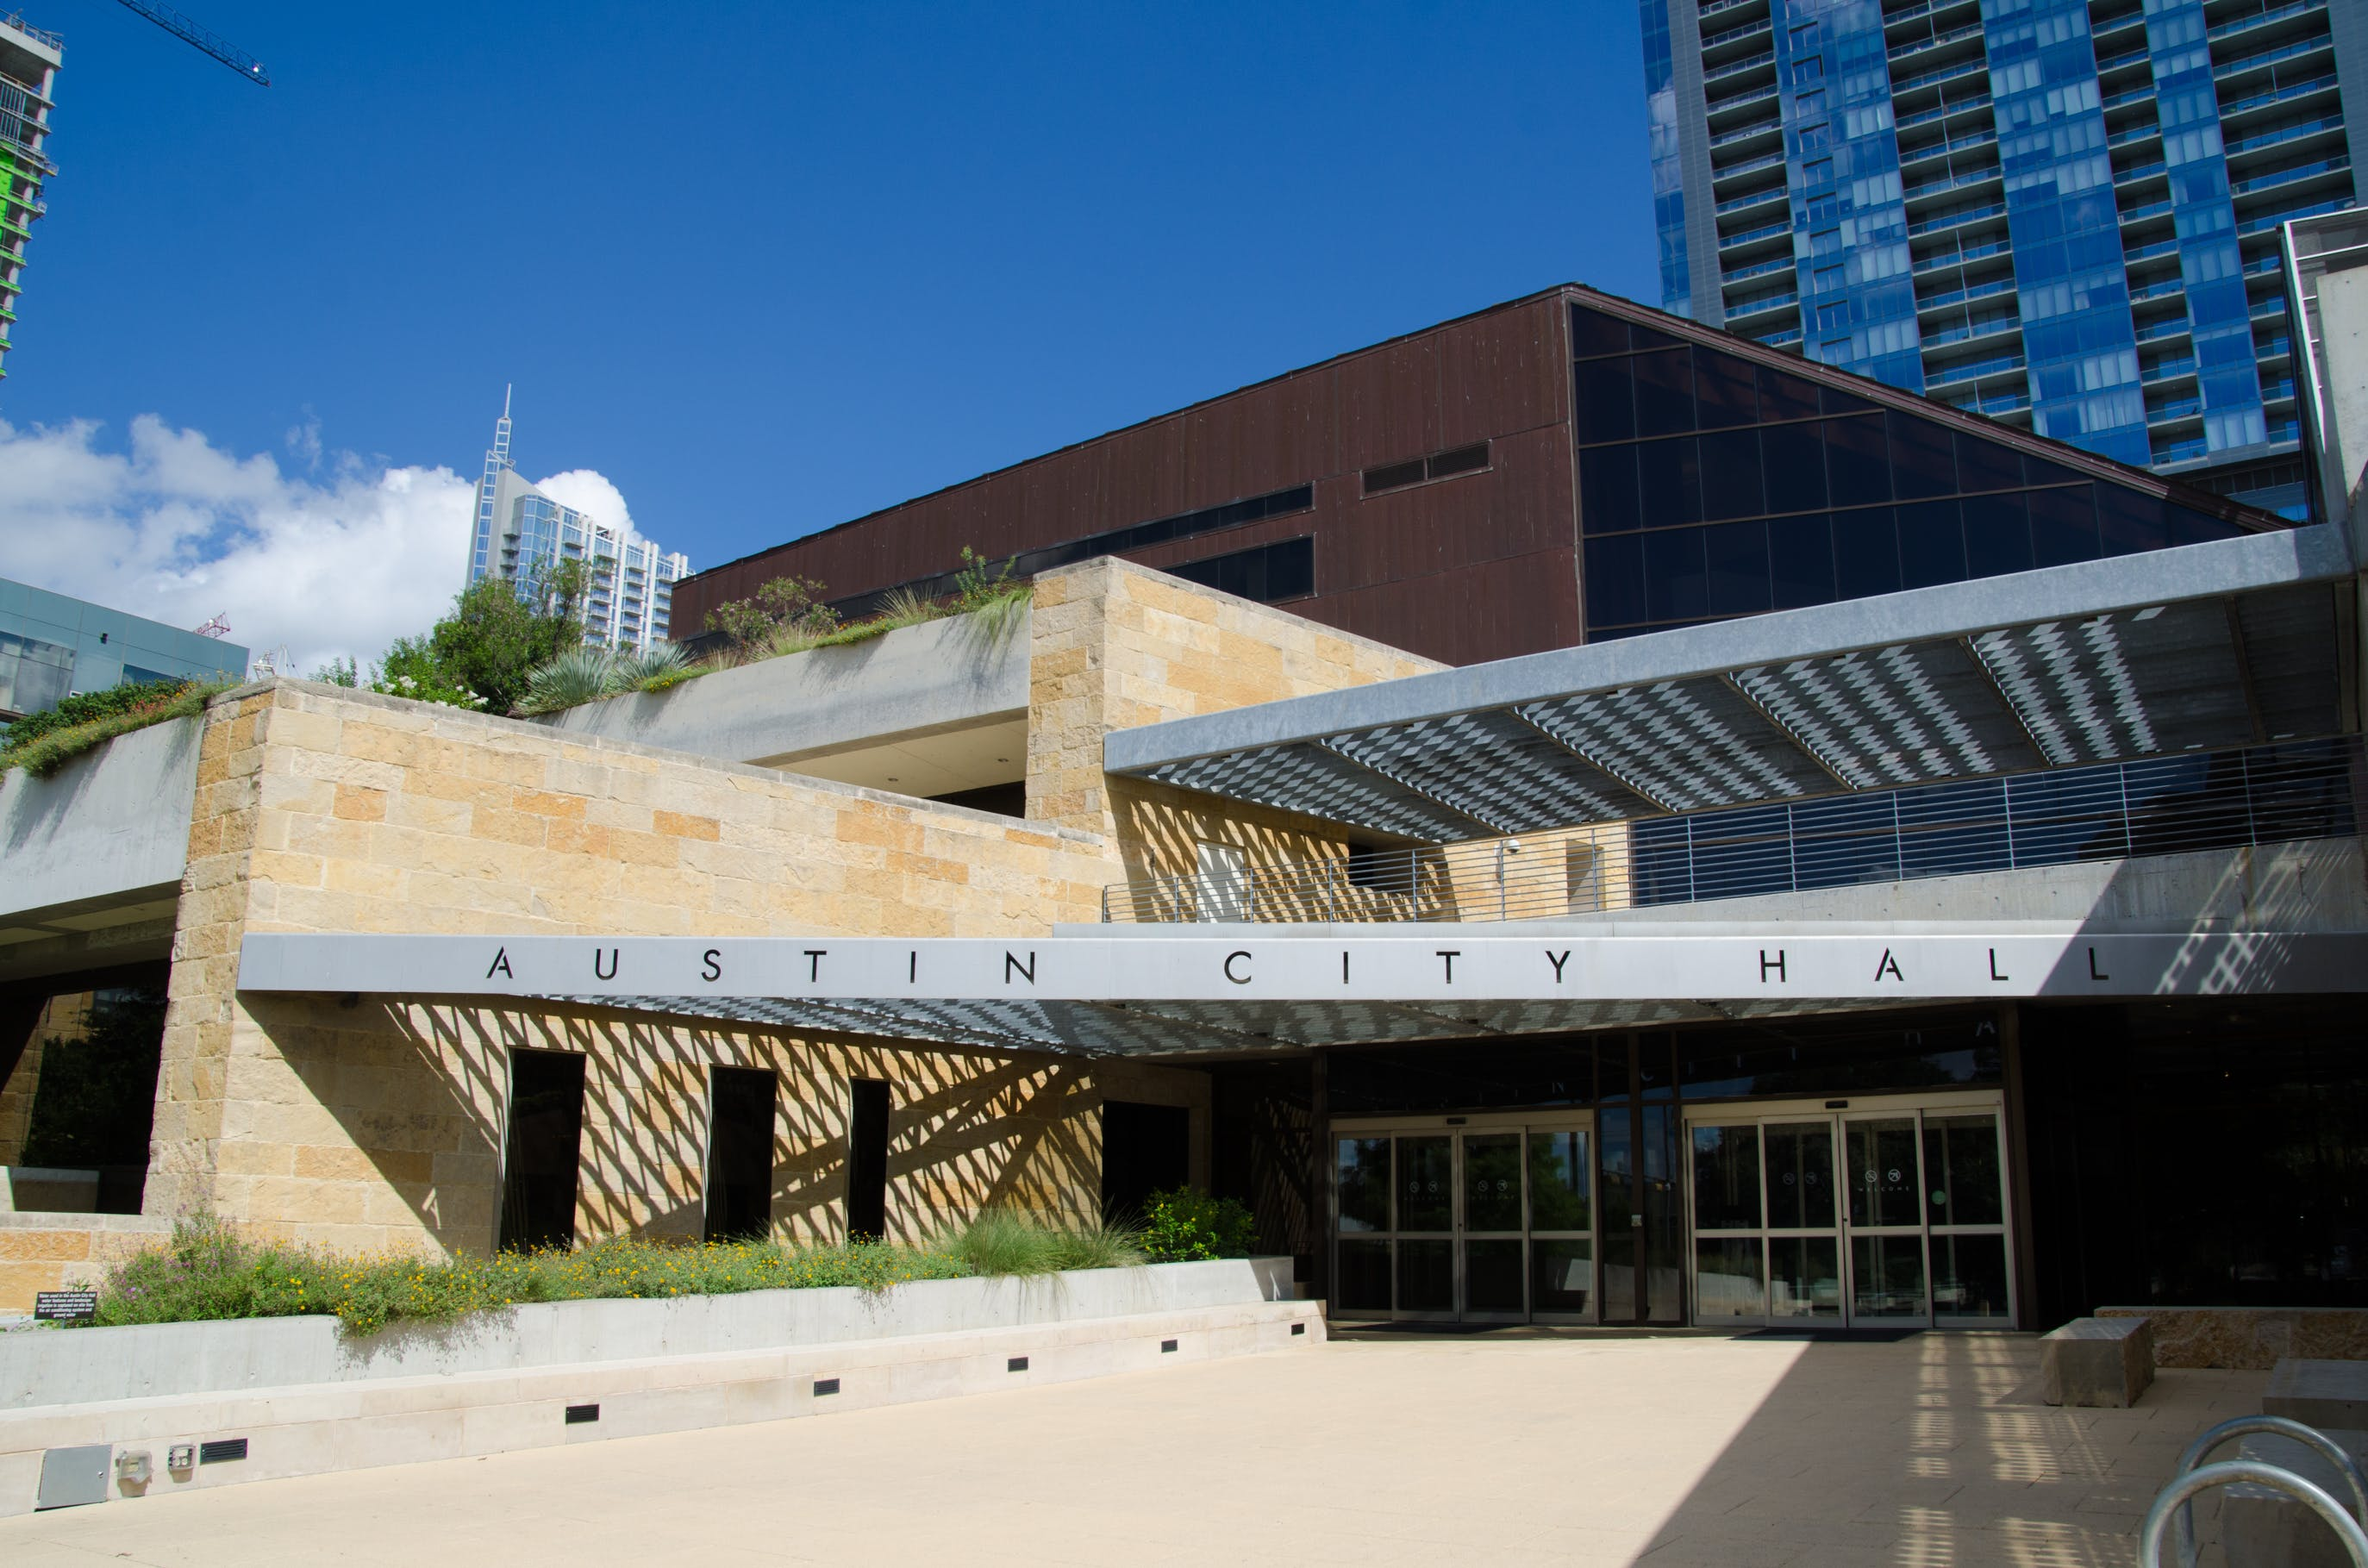 Image of Austin City Hall